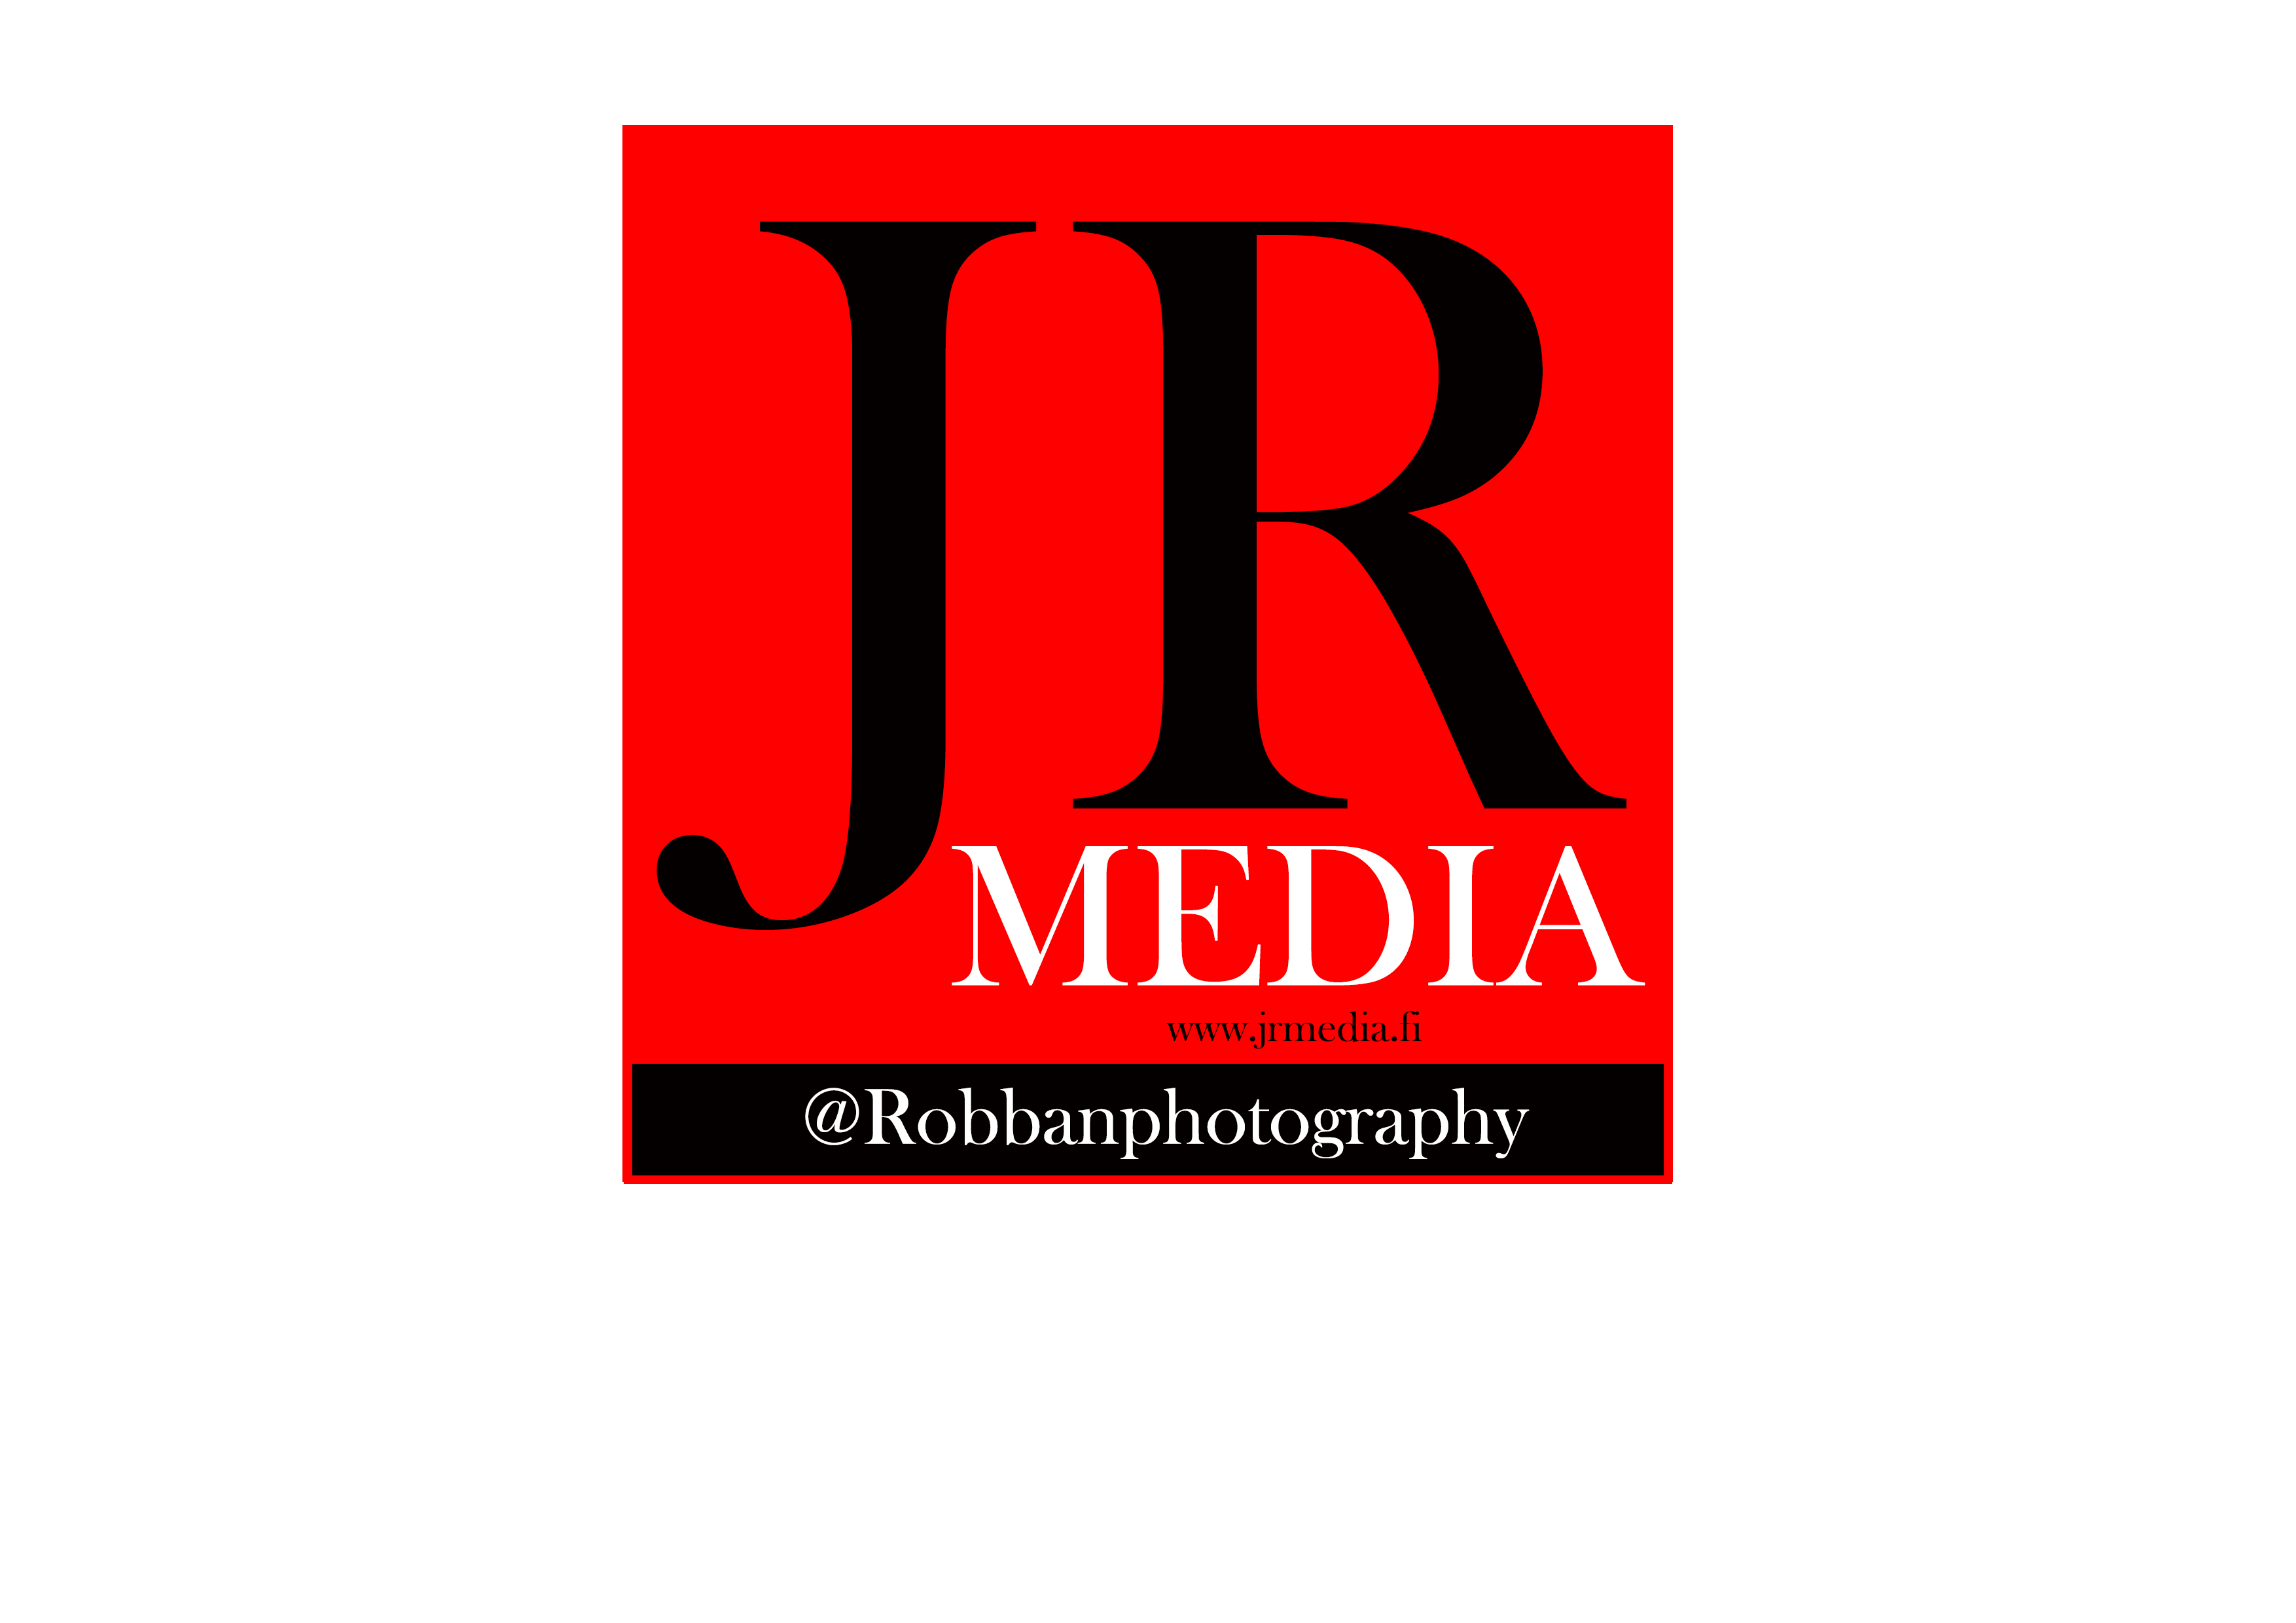 JR-Media / @Robbanphotography